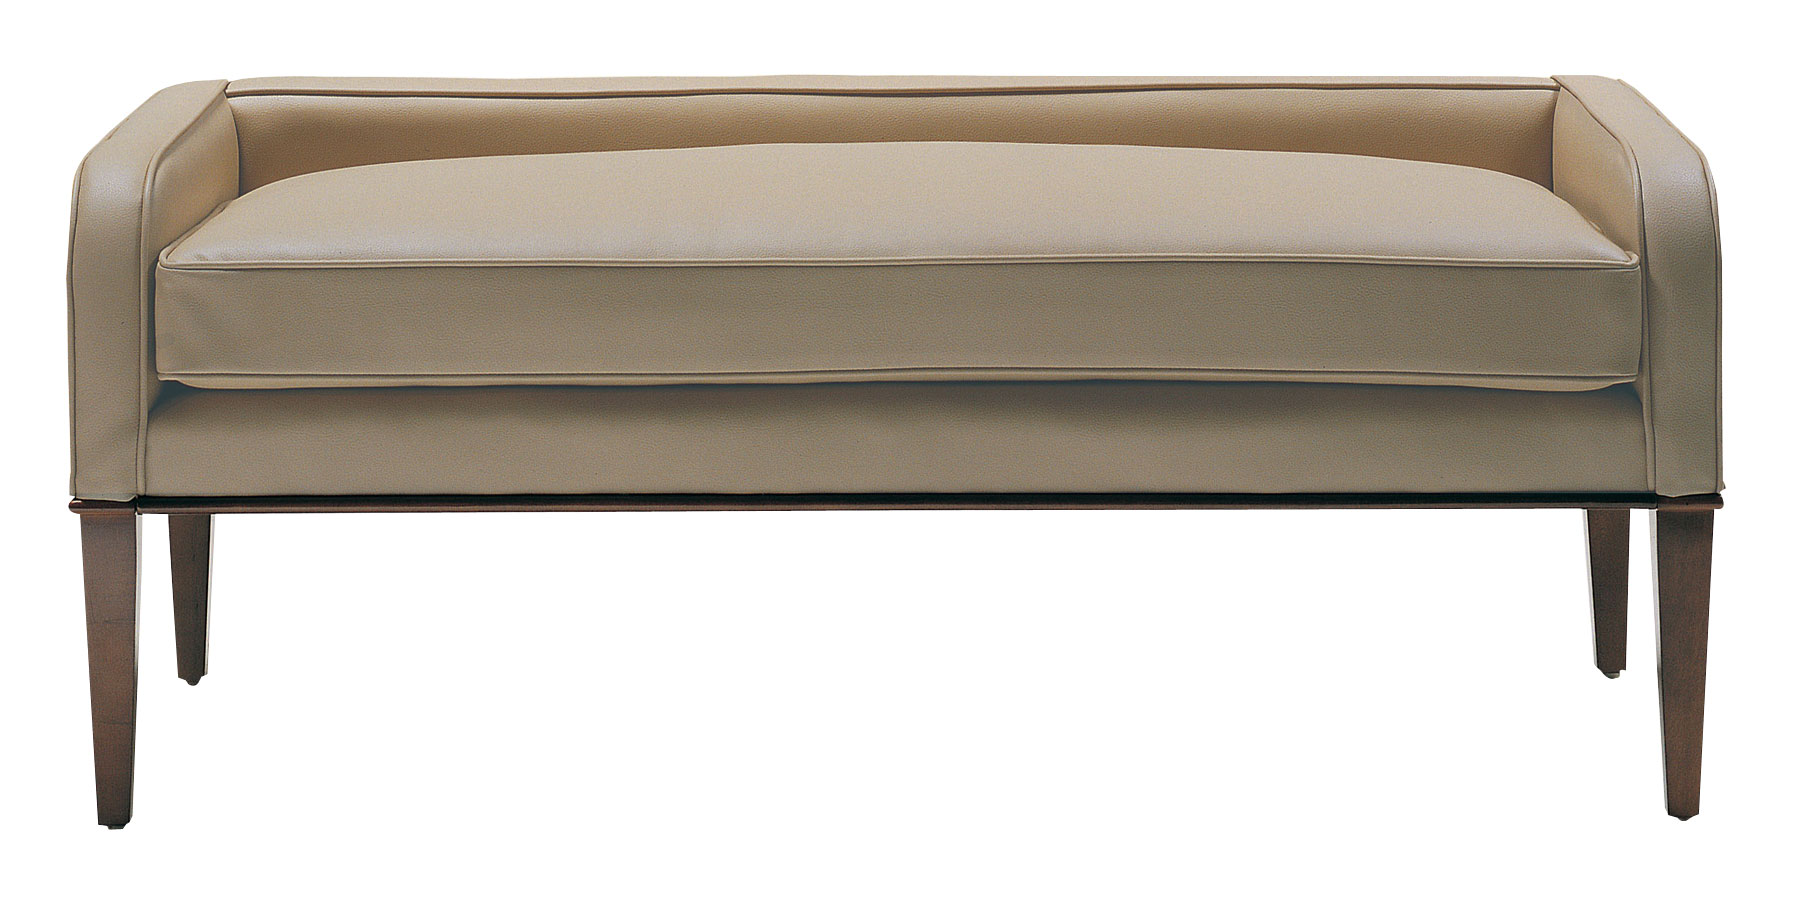 Leander Designer Style Leather Bench